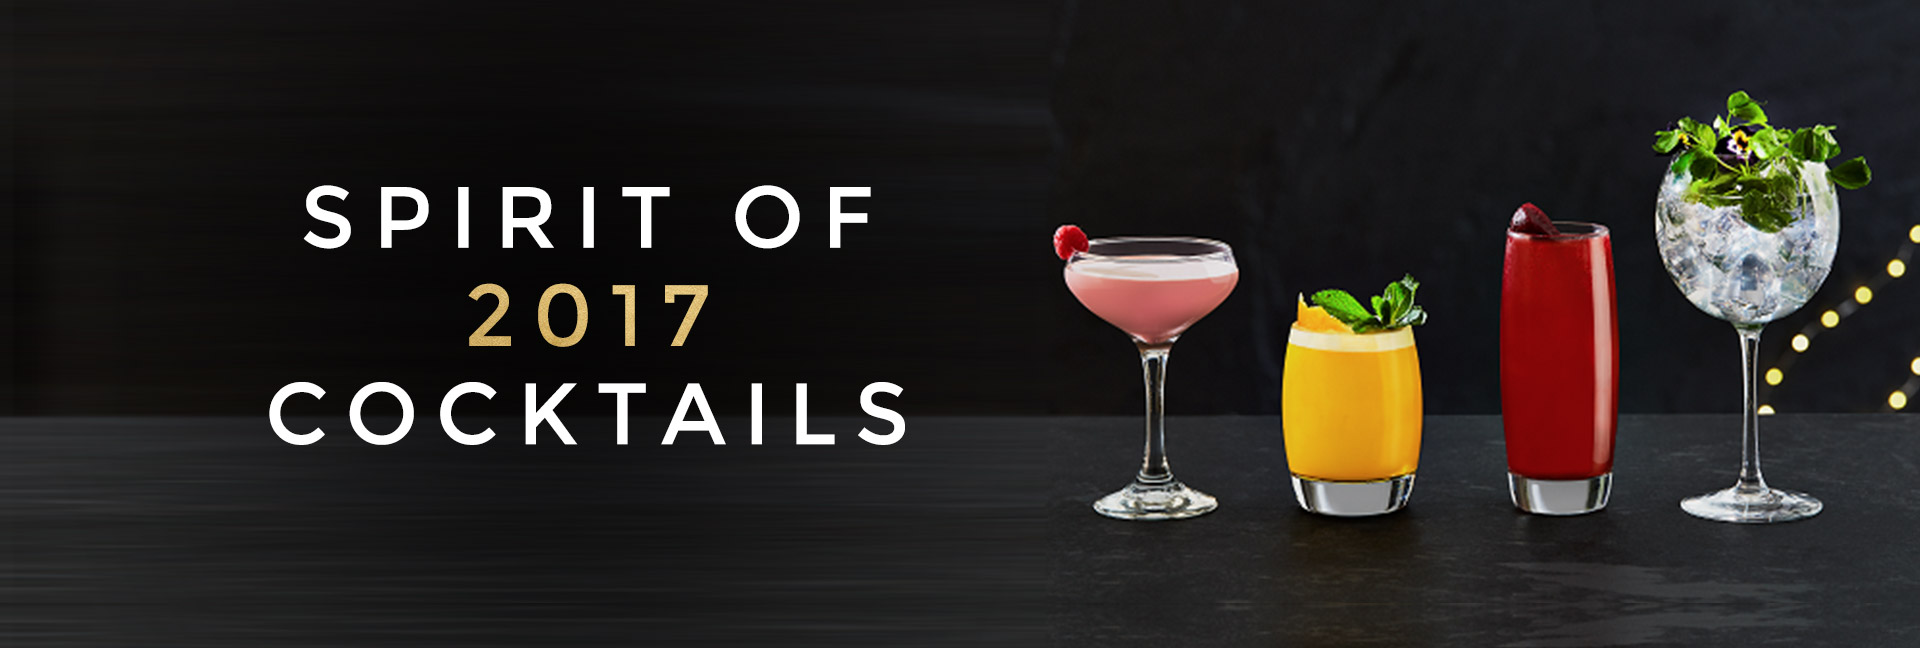 Spirit of 2017 cocktails at All Bar One Victoria